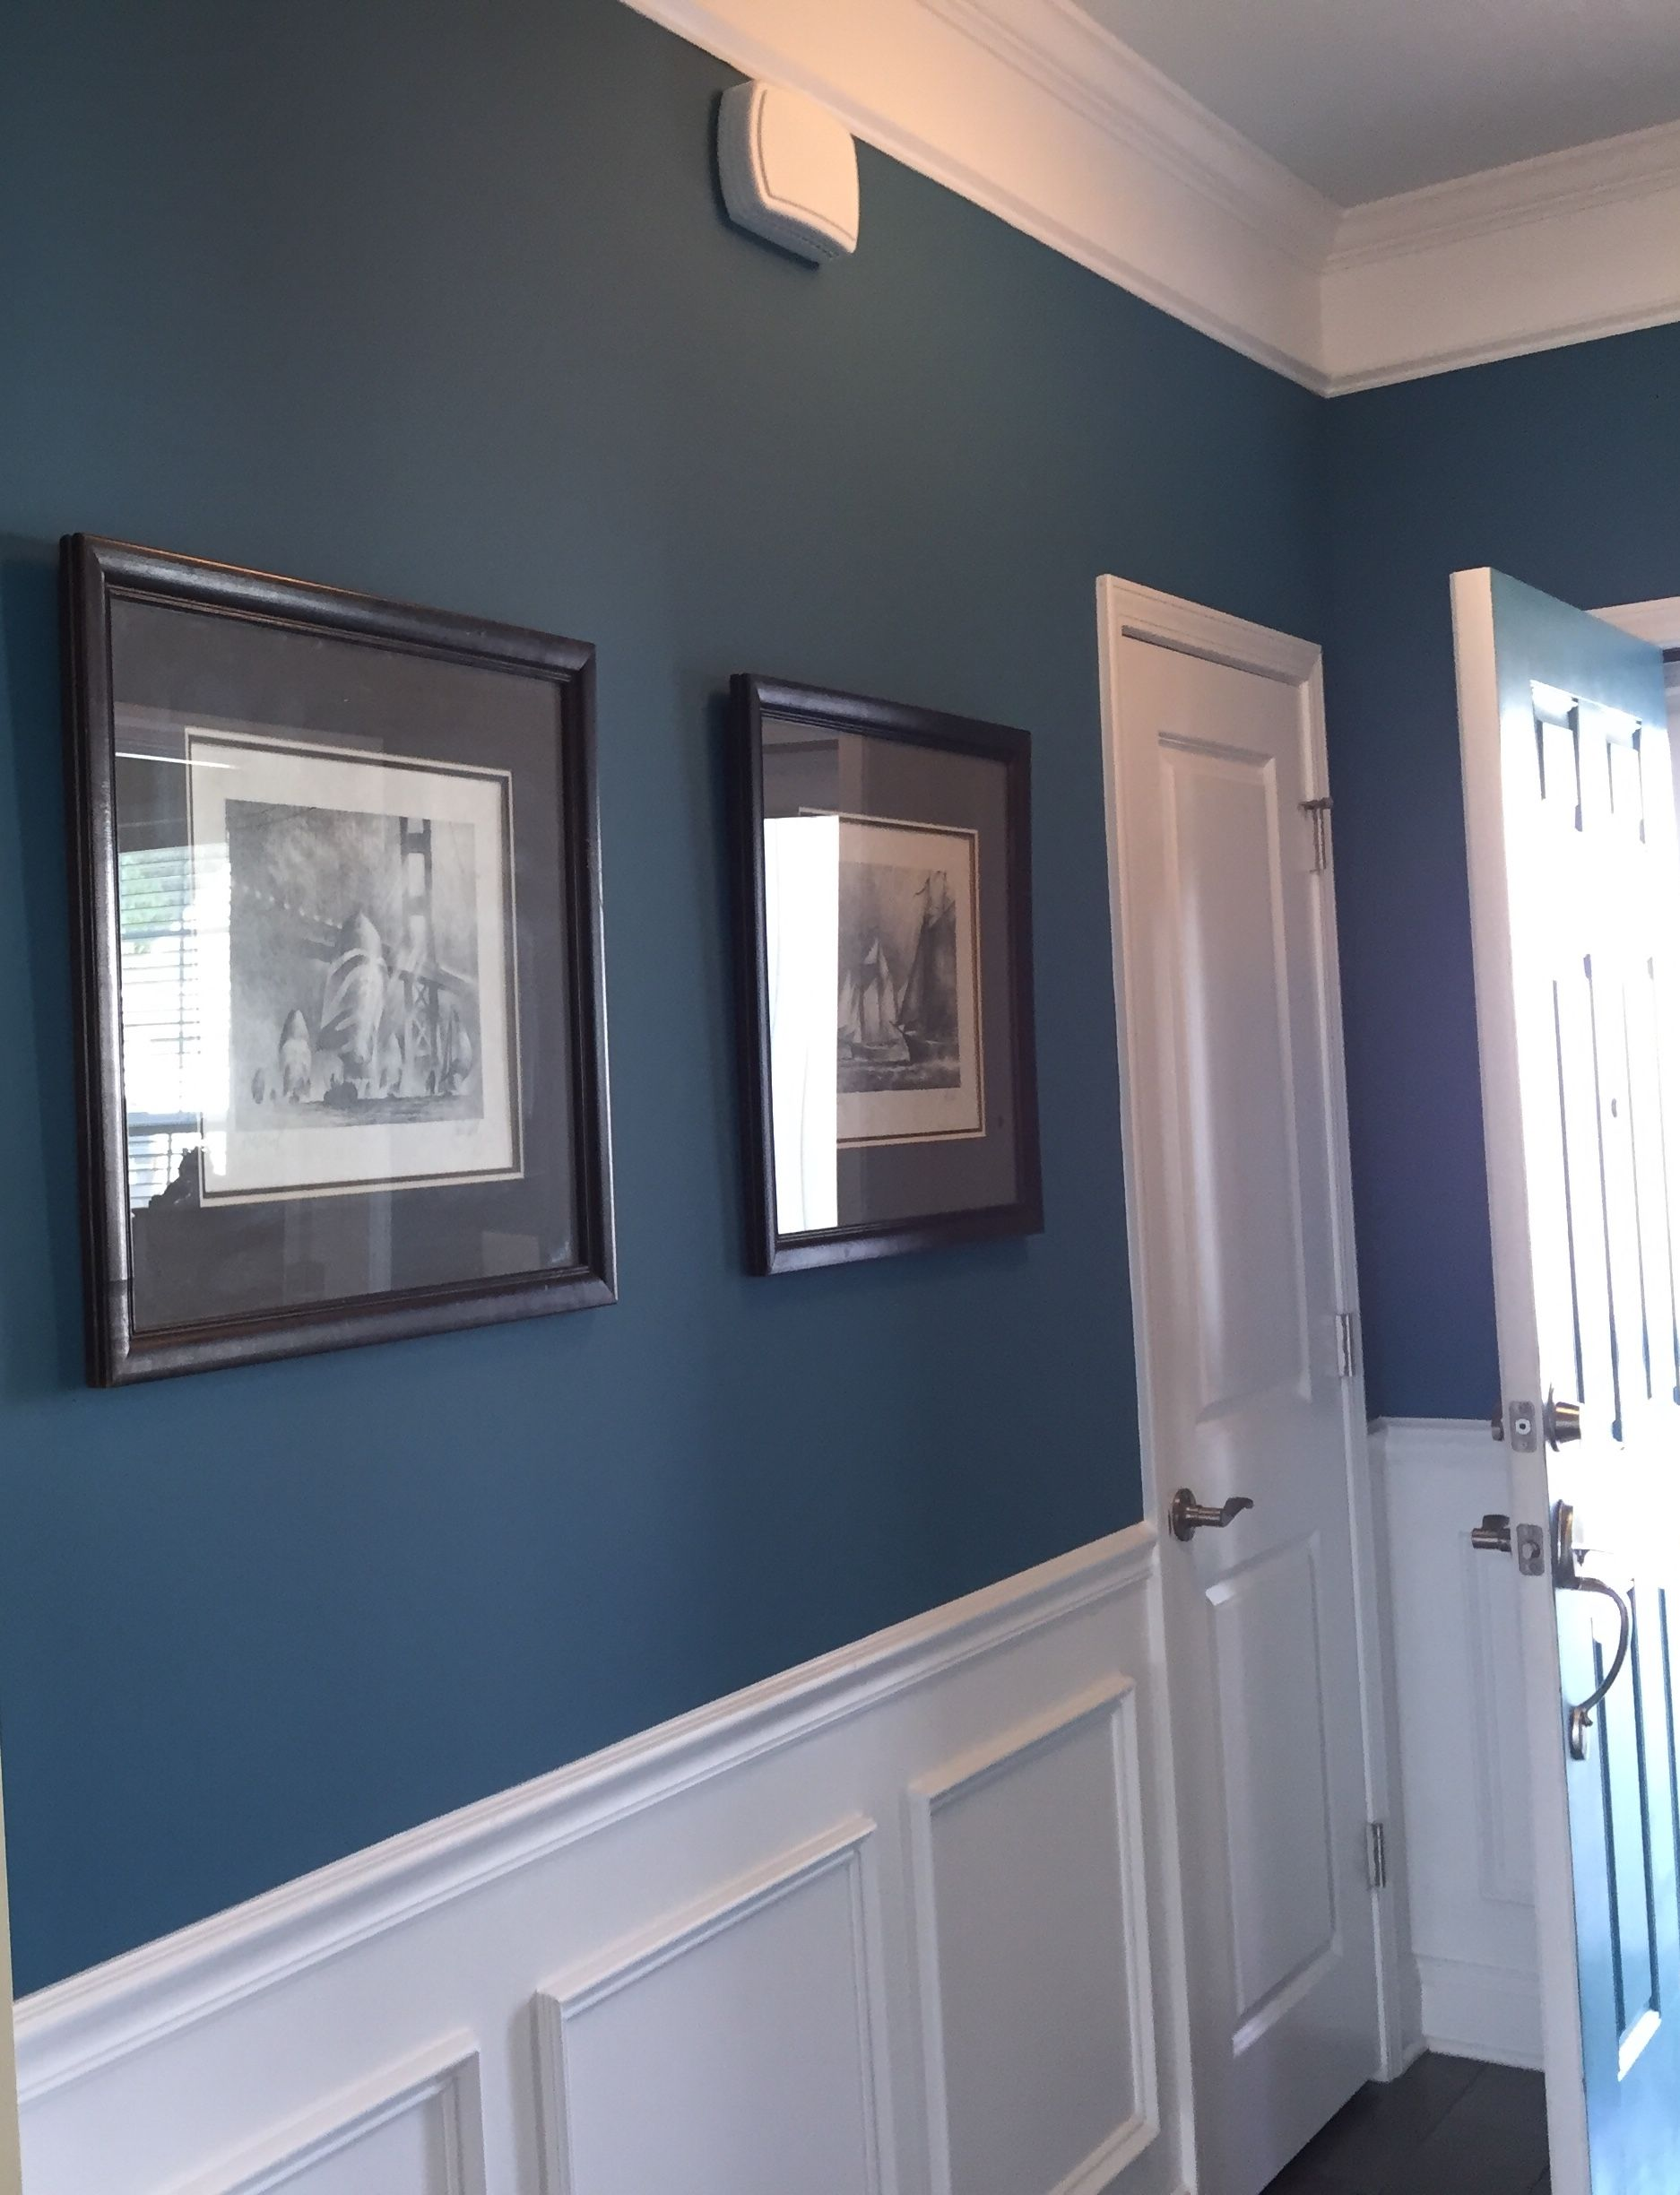 Silken Peacock Sw9059 Sherwin Williams Paint Color Basement Paint Colors Paint Colors For Living Room Turquoise Wall Colors #peacock #colors #living #room